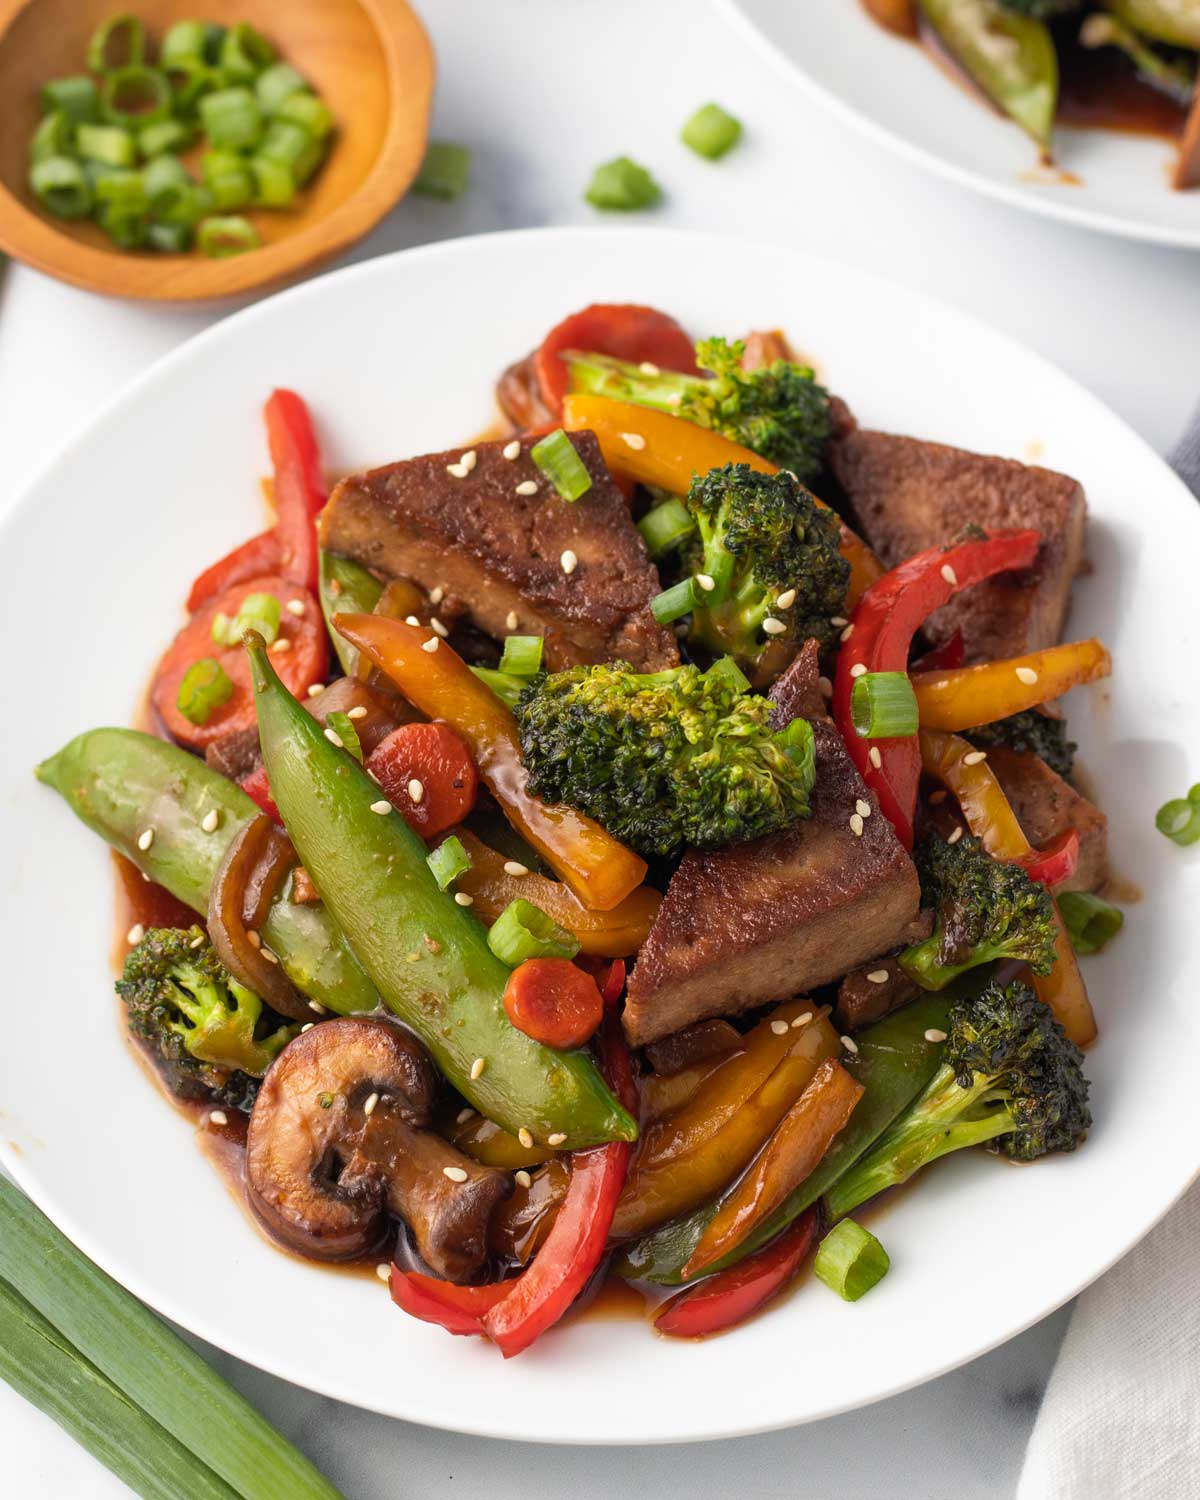 vegan tofu stir fry with colorful vegetables and sesame seeds on a white plate